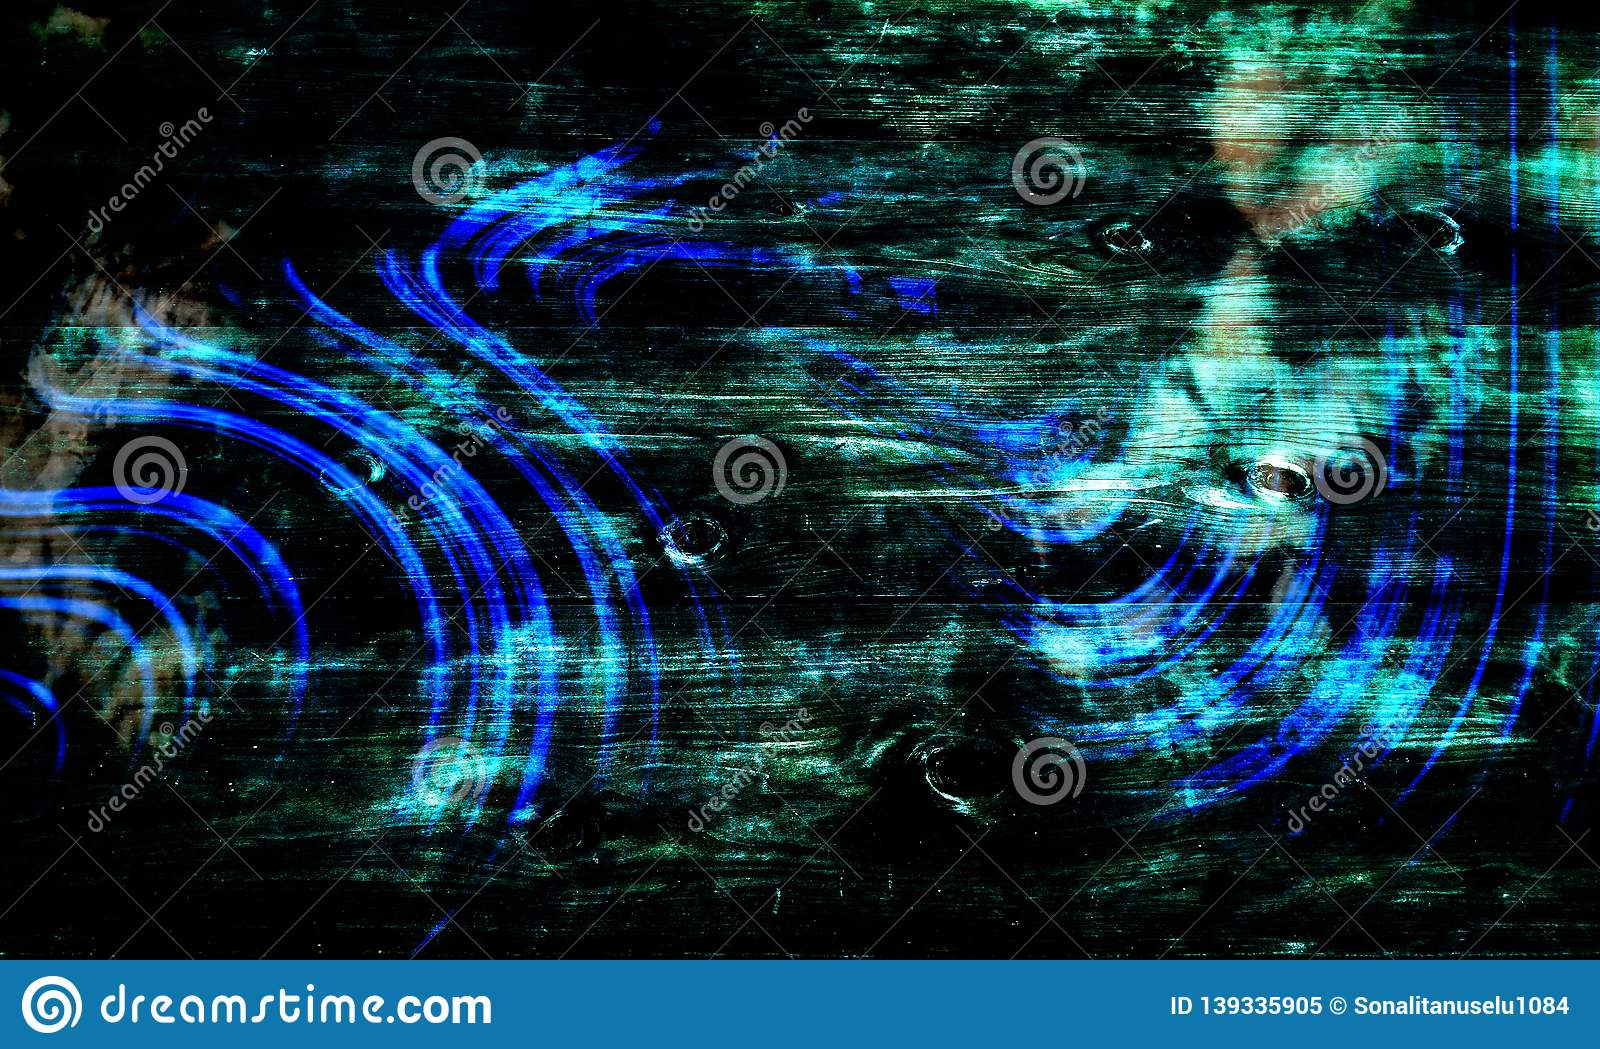 Abstract green and blue shaded textured background with lighting effects. wallpaper.